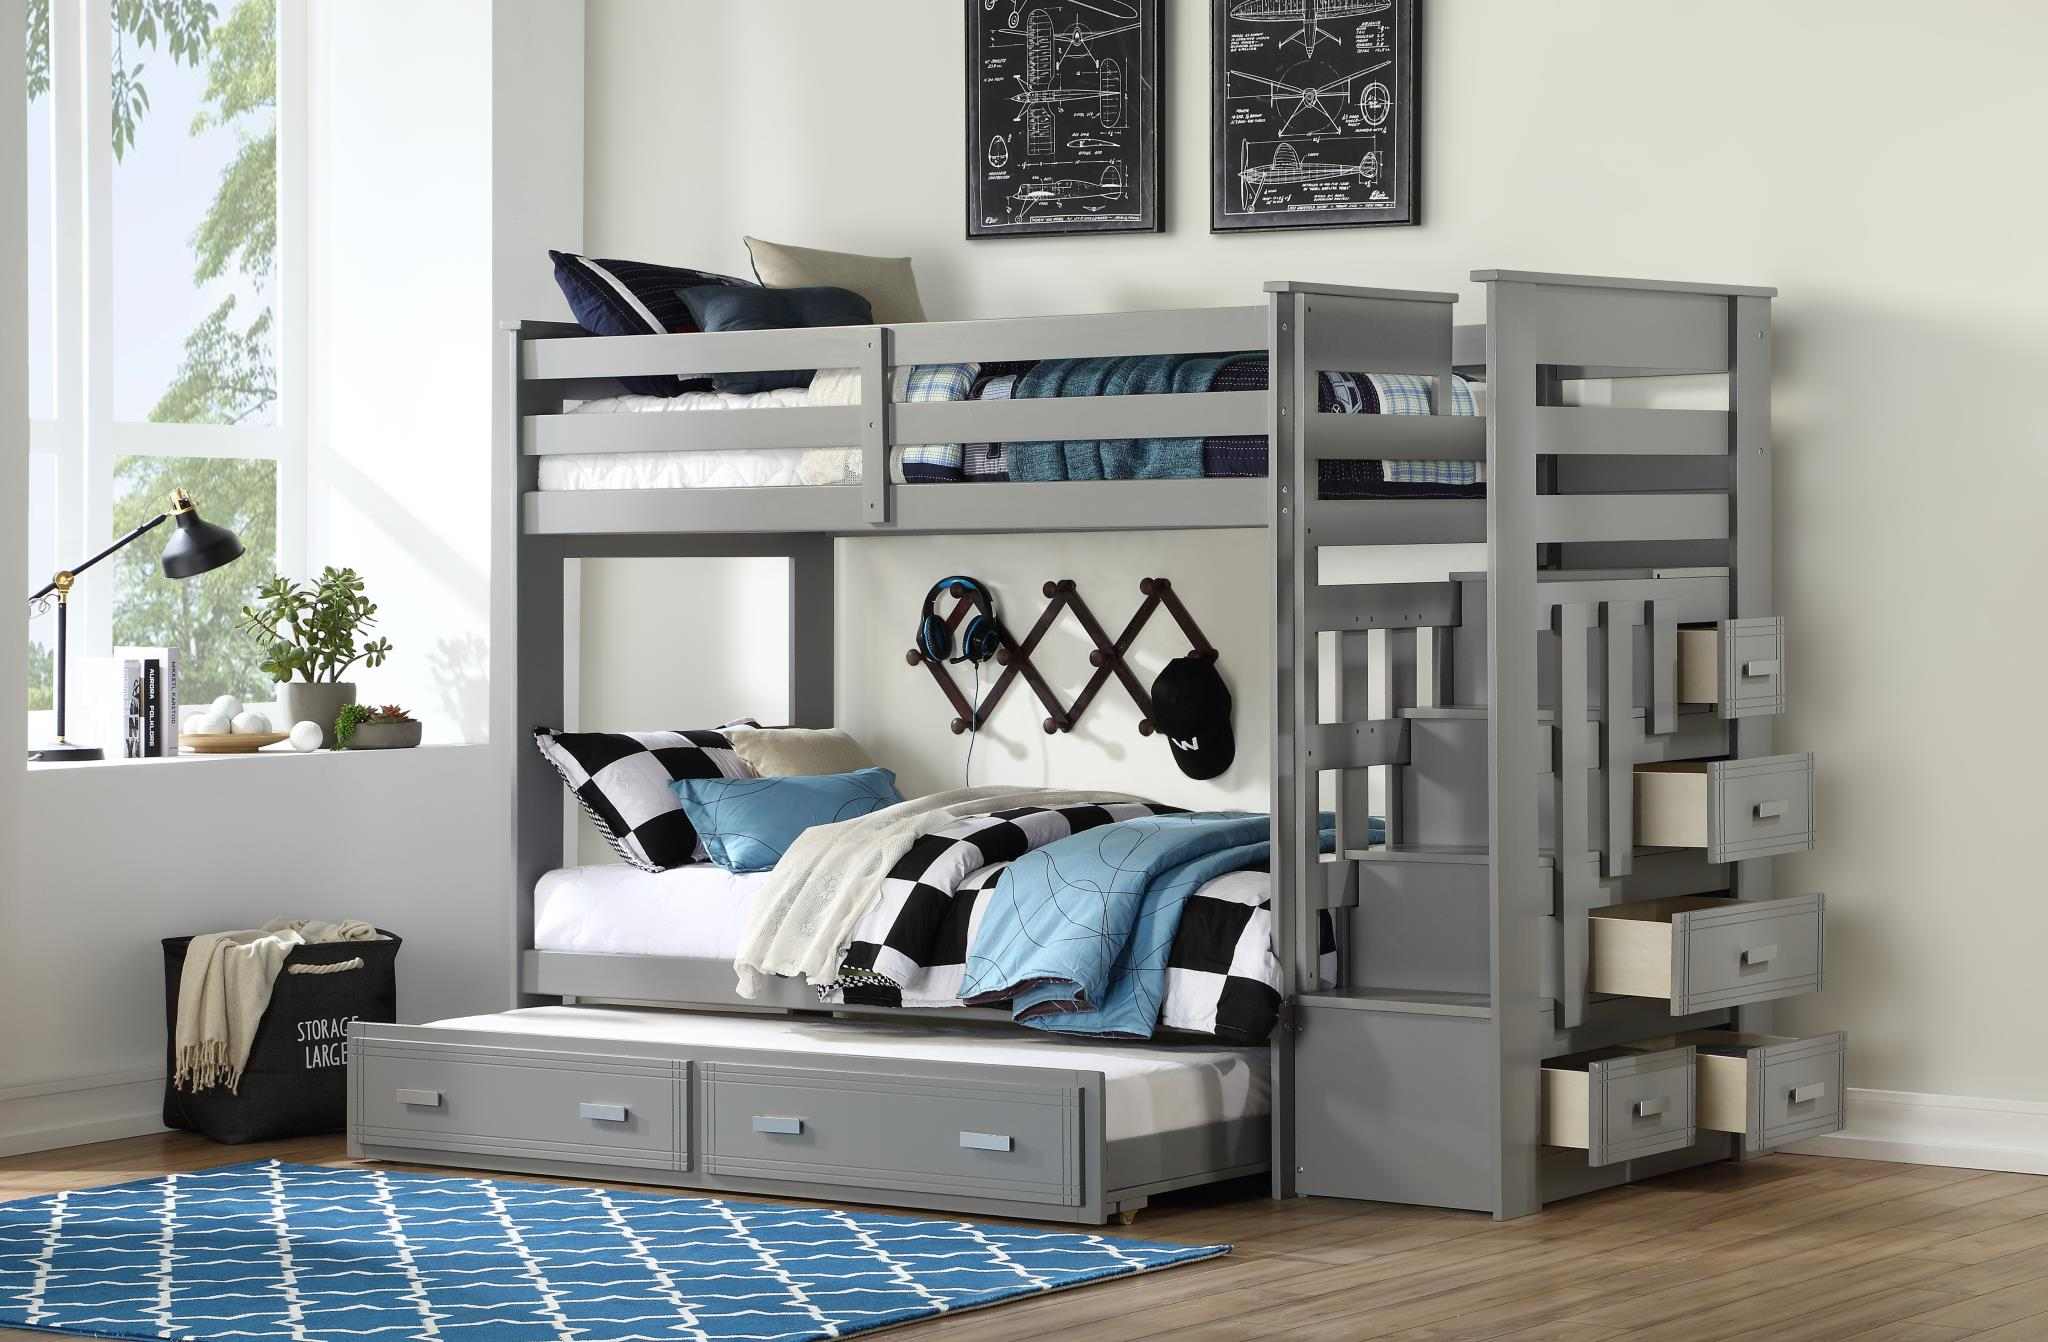 Image Result For Bed Built Over Stair Box: Georgetown Twin Over Twin Bunk Bed W/ Stairs In Grey